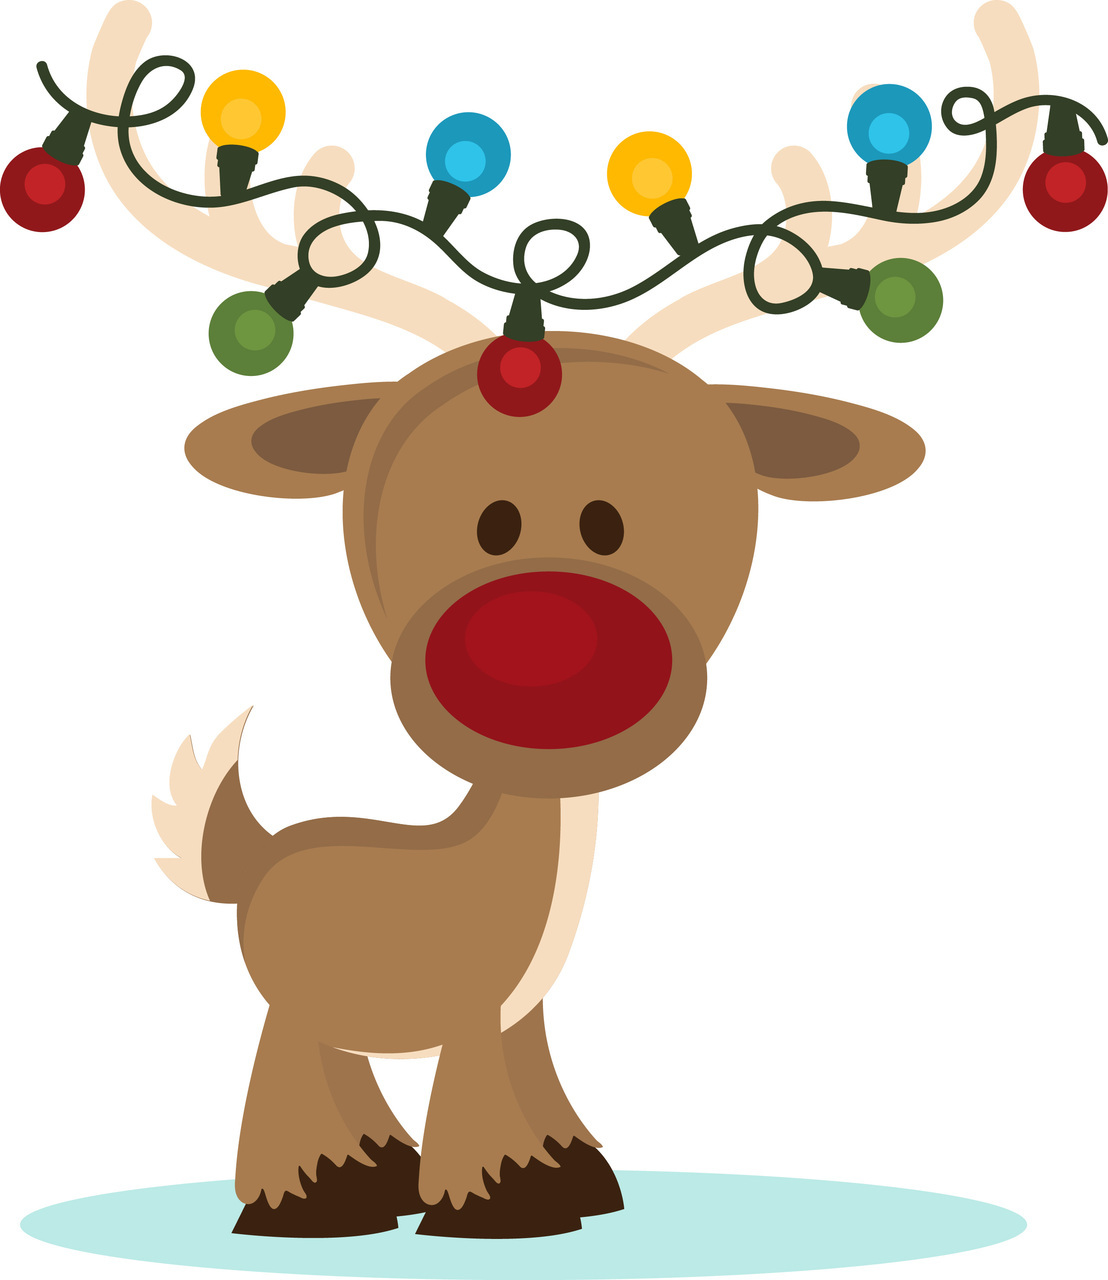 Christmas Lights clipart cute PPbN Reindeer Designs Lights Reindeer